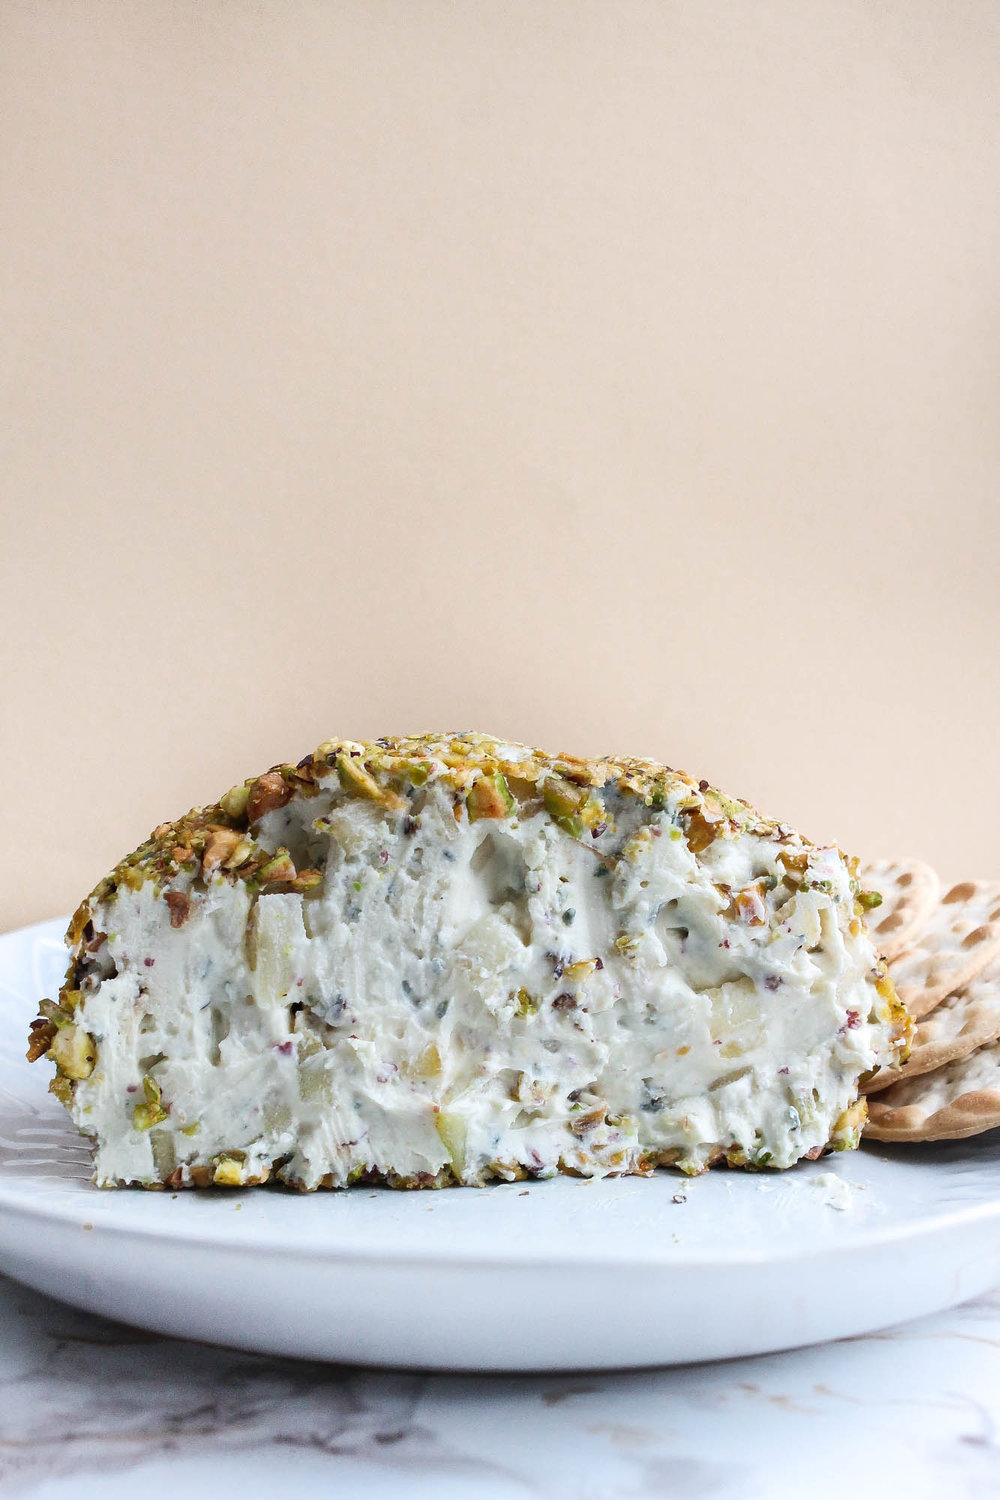 Stilton Pear Cheese Ball With Pistachios + Pink Peppercorns    This cheese ball is a perfect appetizer for a holiday party or dinner! Cream cheese, blue cheese, pear, pink peppercorns, pistachios + honey. Serve with crackers, bread, or vegetables.    creamandhoney.ca